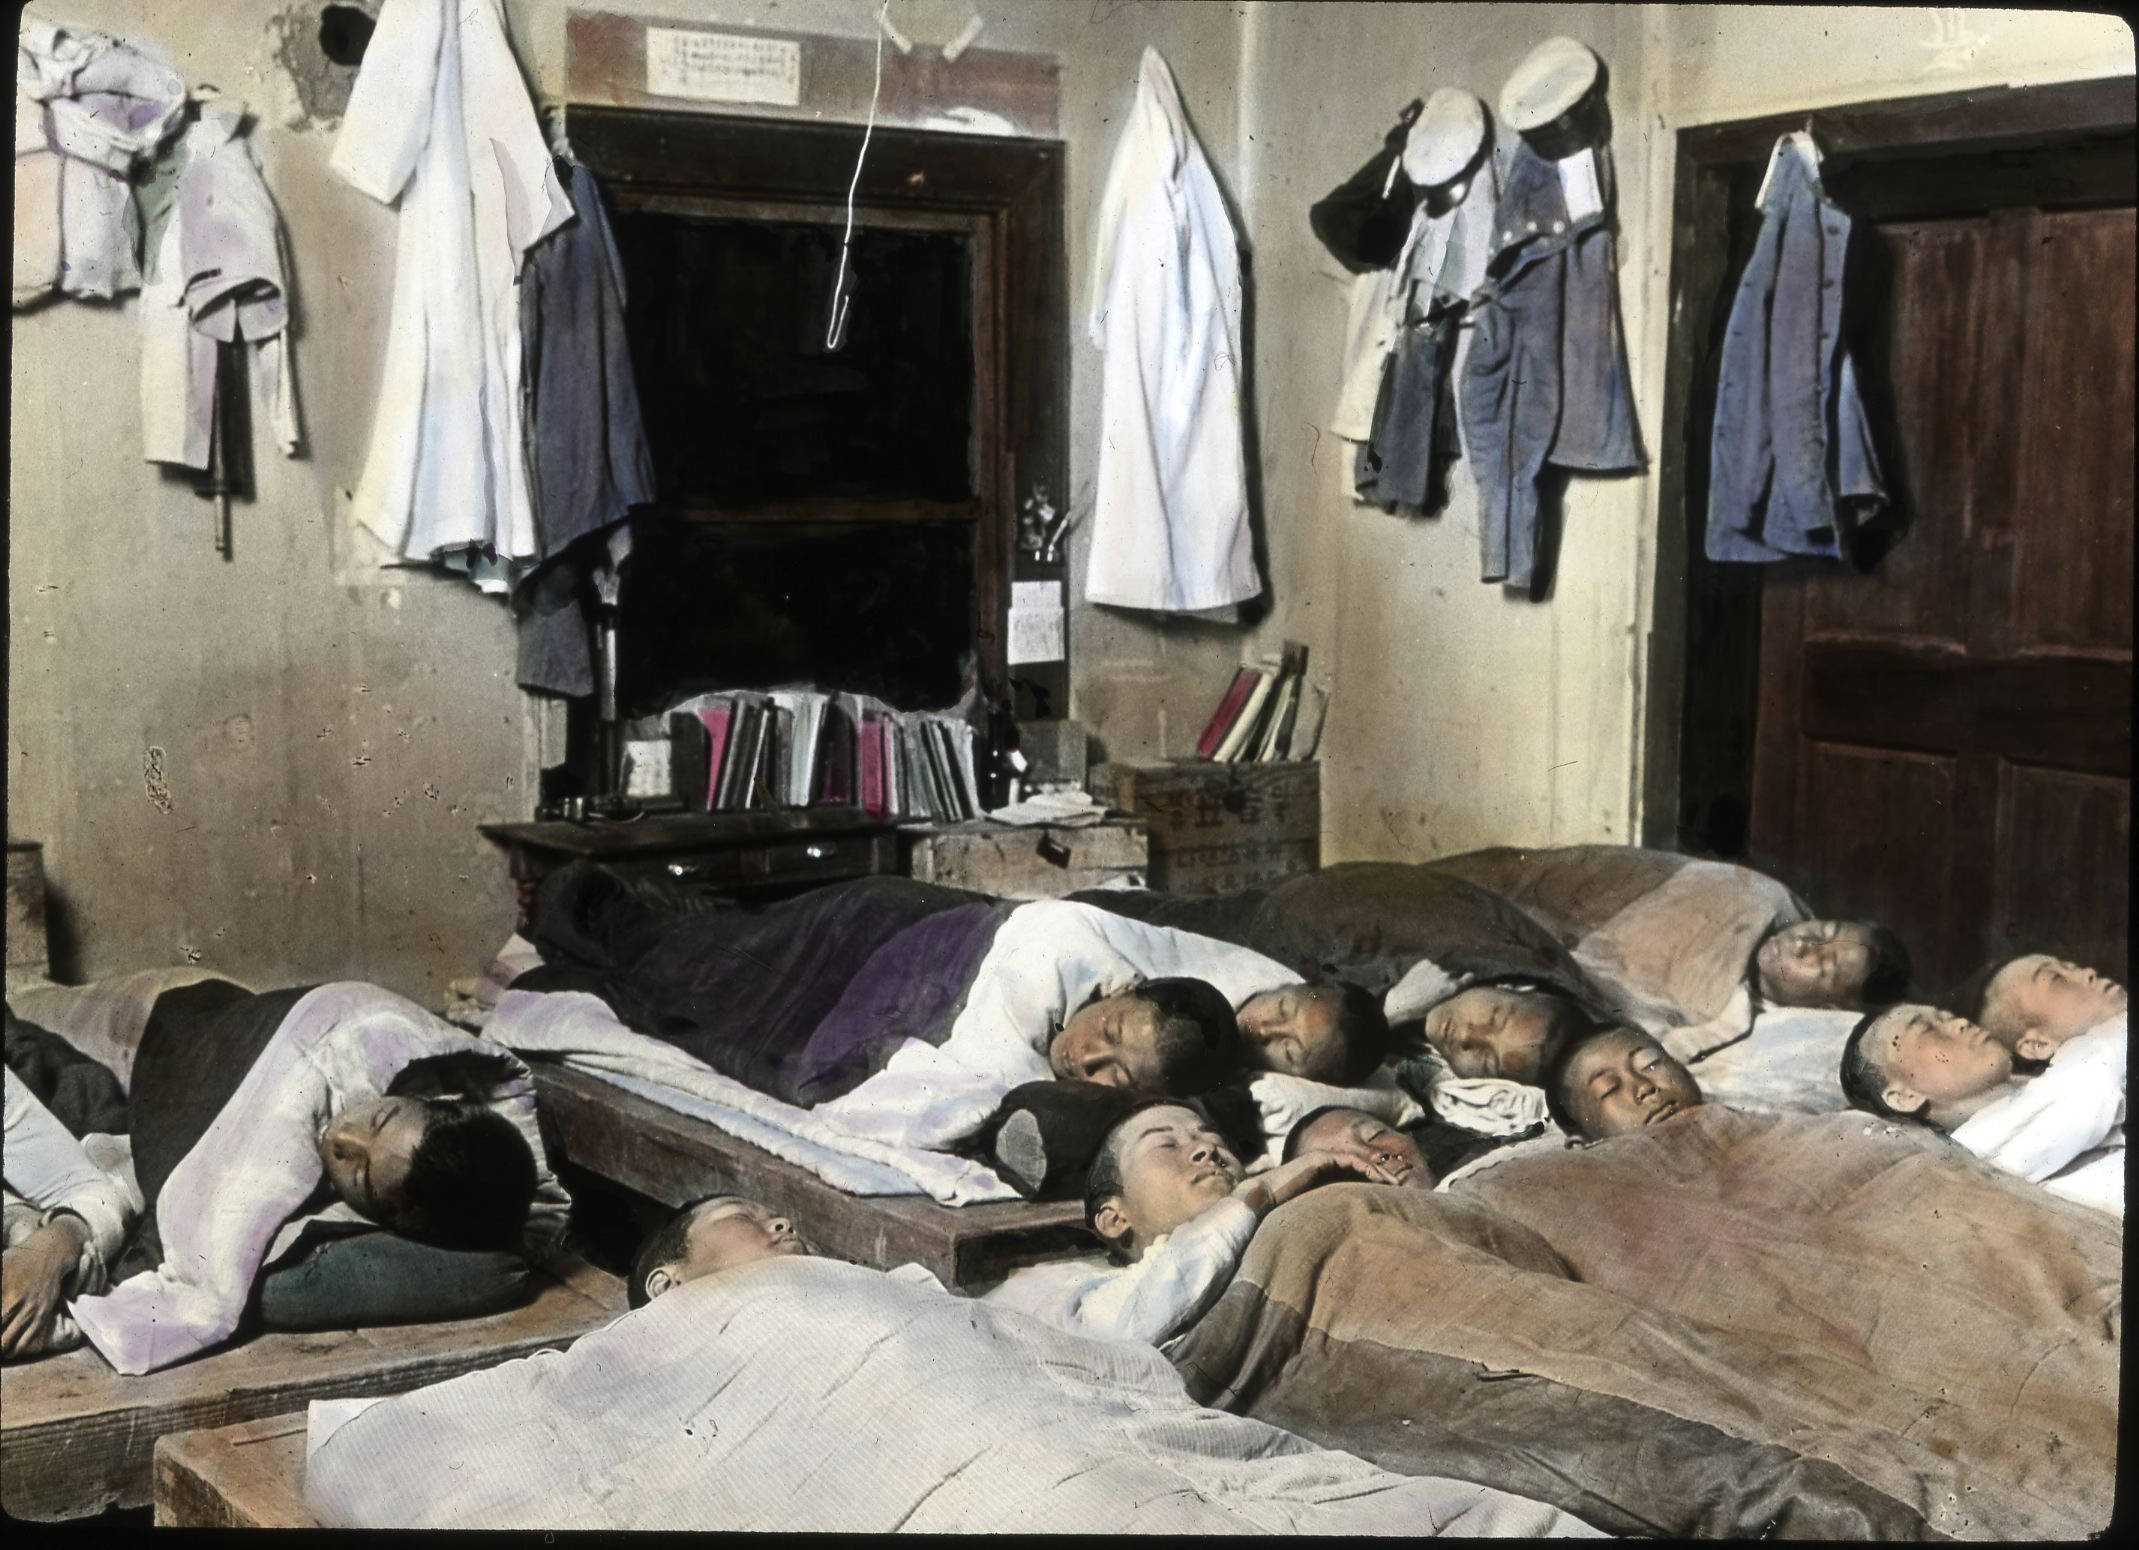 A crowded household can mean too many people sleeping in one bedroom or bed, which disrupts sleep and our need for privacy.   Methodist Episcopal Church/  Wikimedia Commons (public domain)